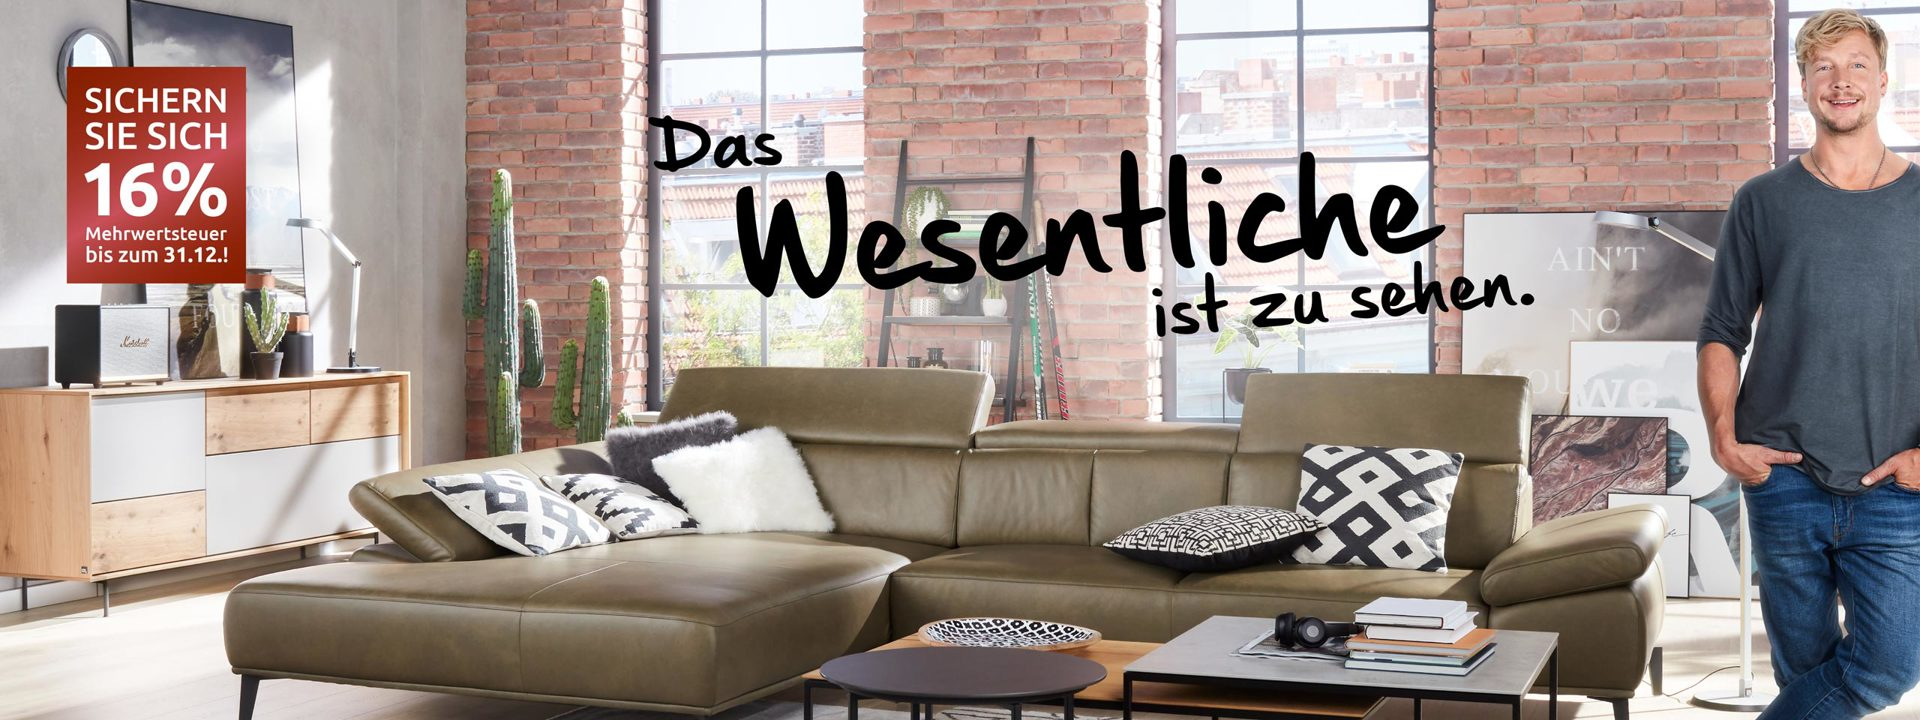 Interliving Keyvisual Sofa Serie 4002 Samu Haber2020 MwSt HF Highlight16 6